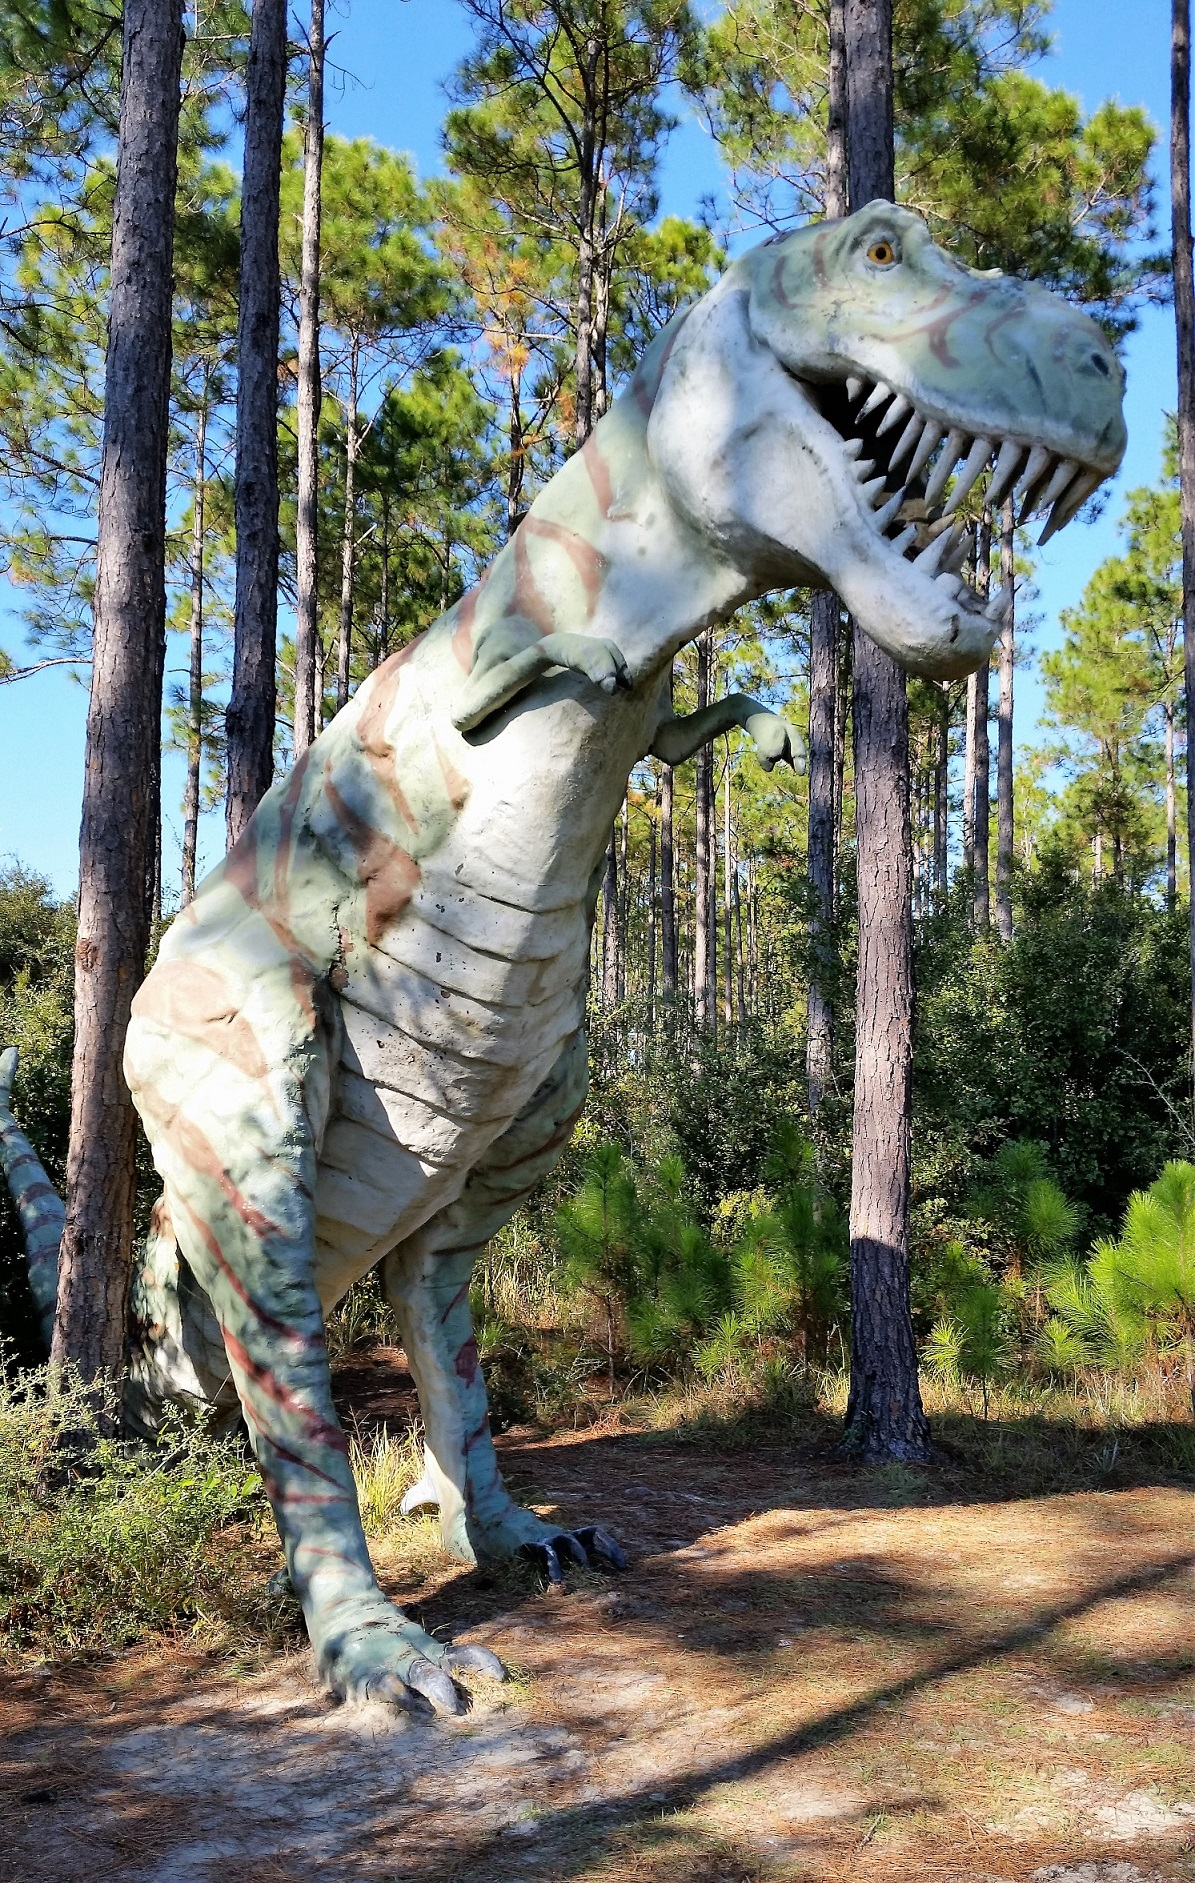 T-Rex in Elberta, Alabama